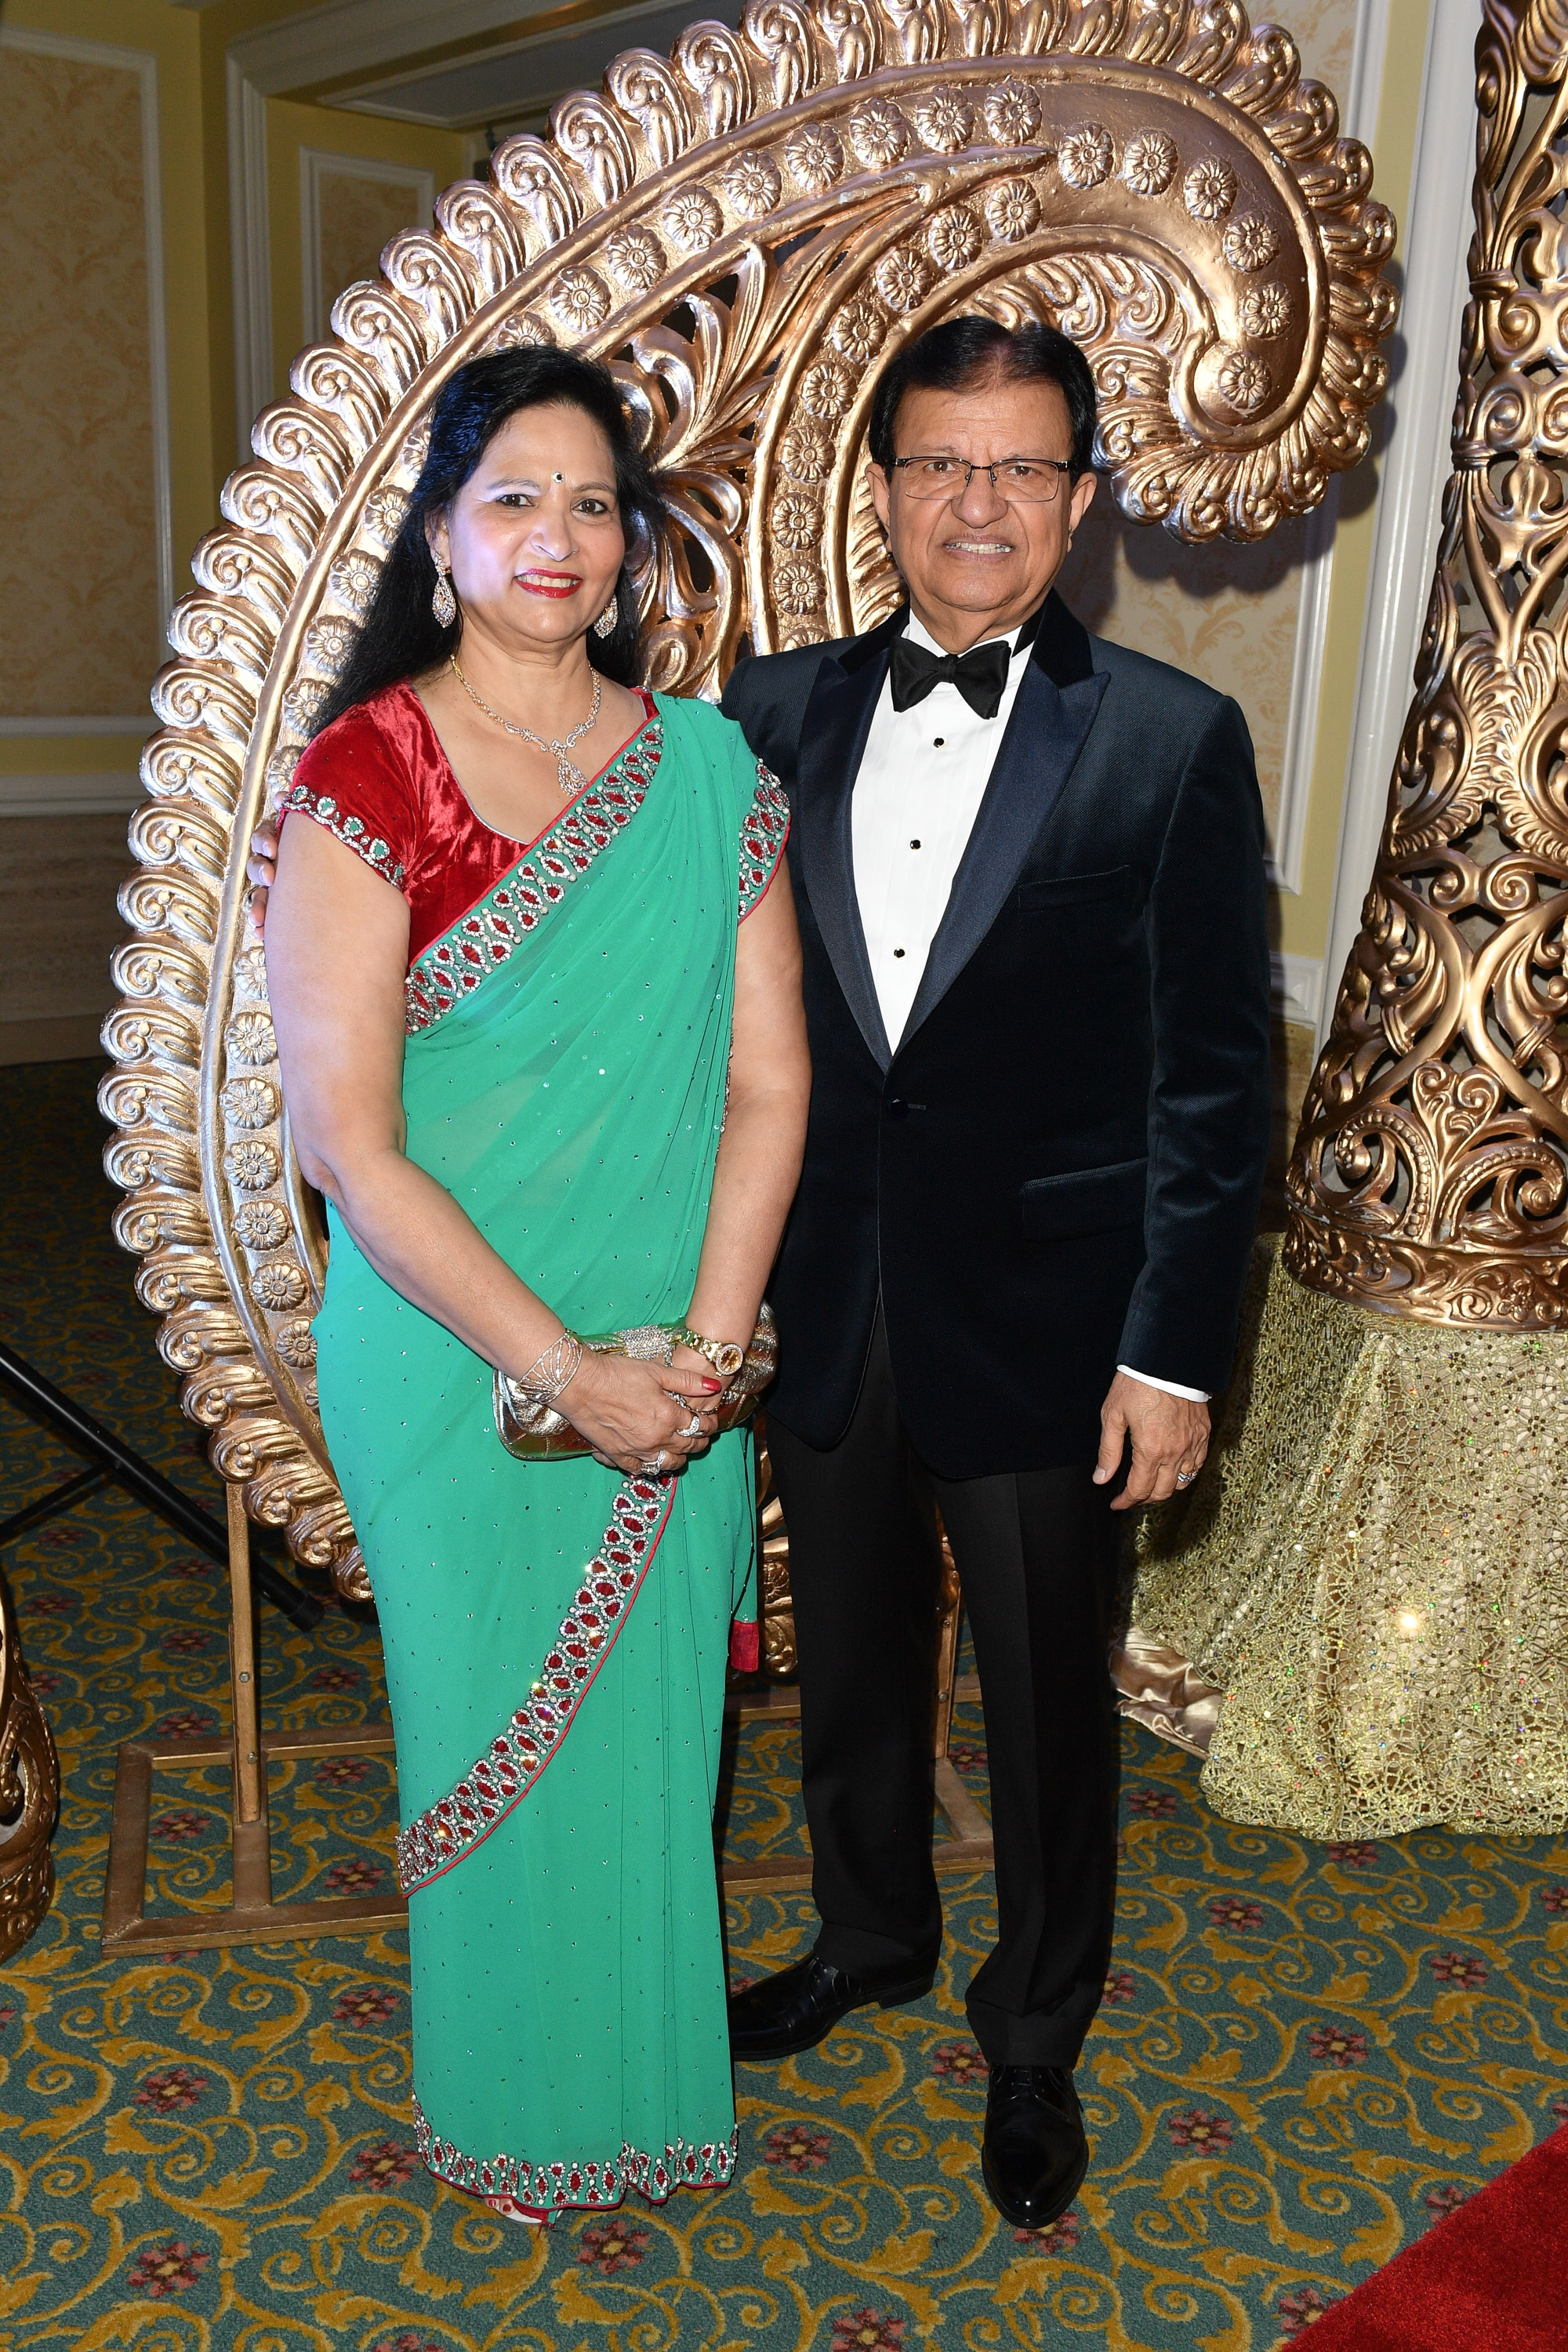 Rashmi Gupta and Event Co-Chair Dr Steve Gupta